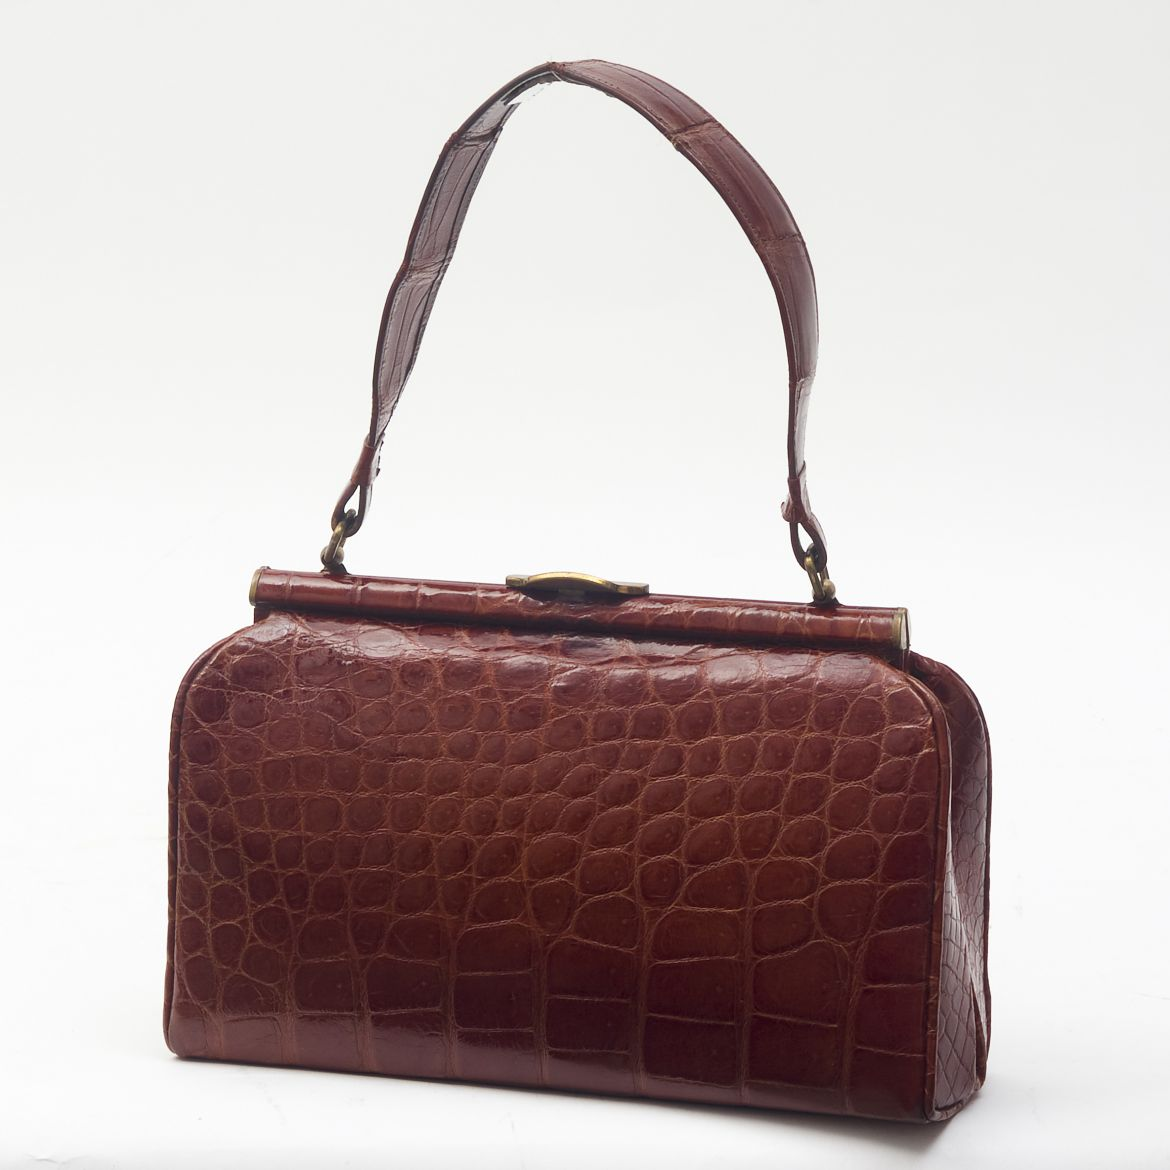 50s Tan Crocodile Handbag